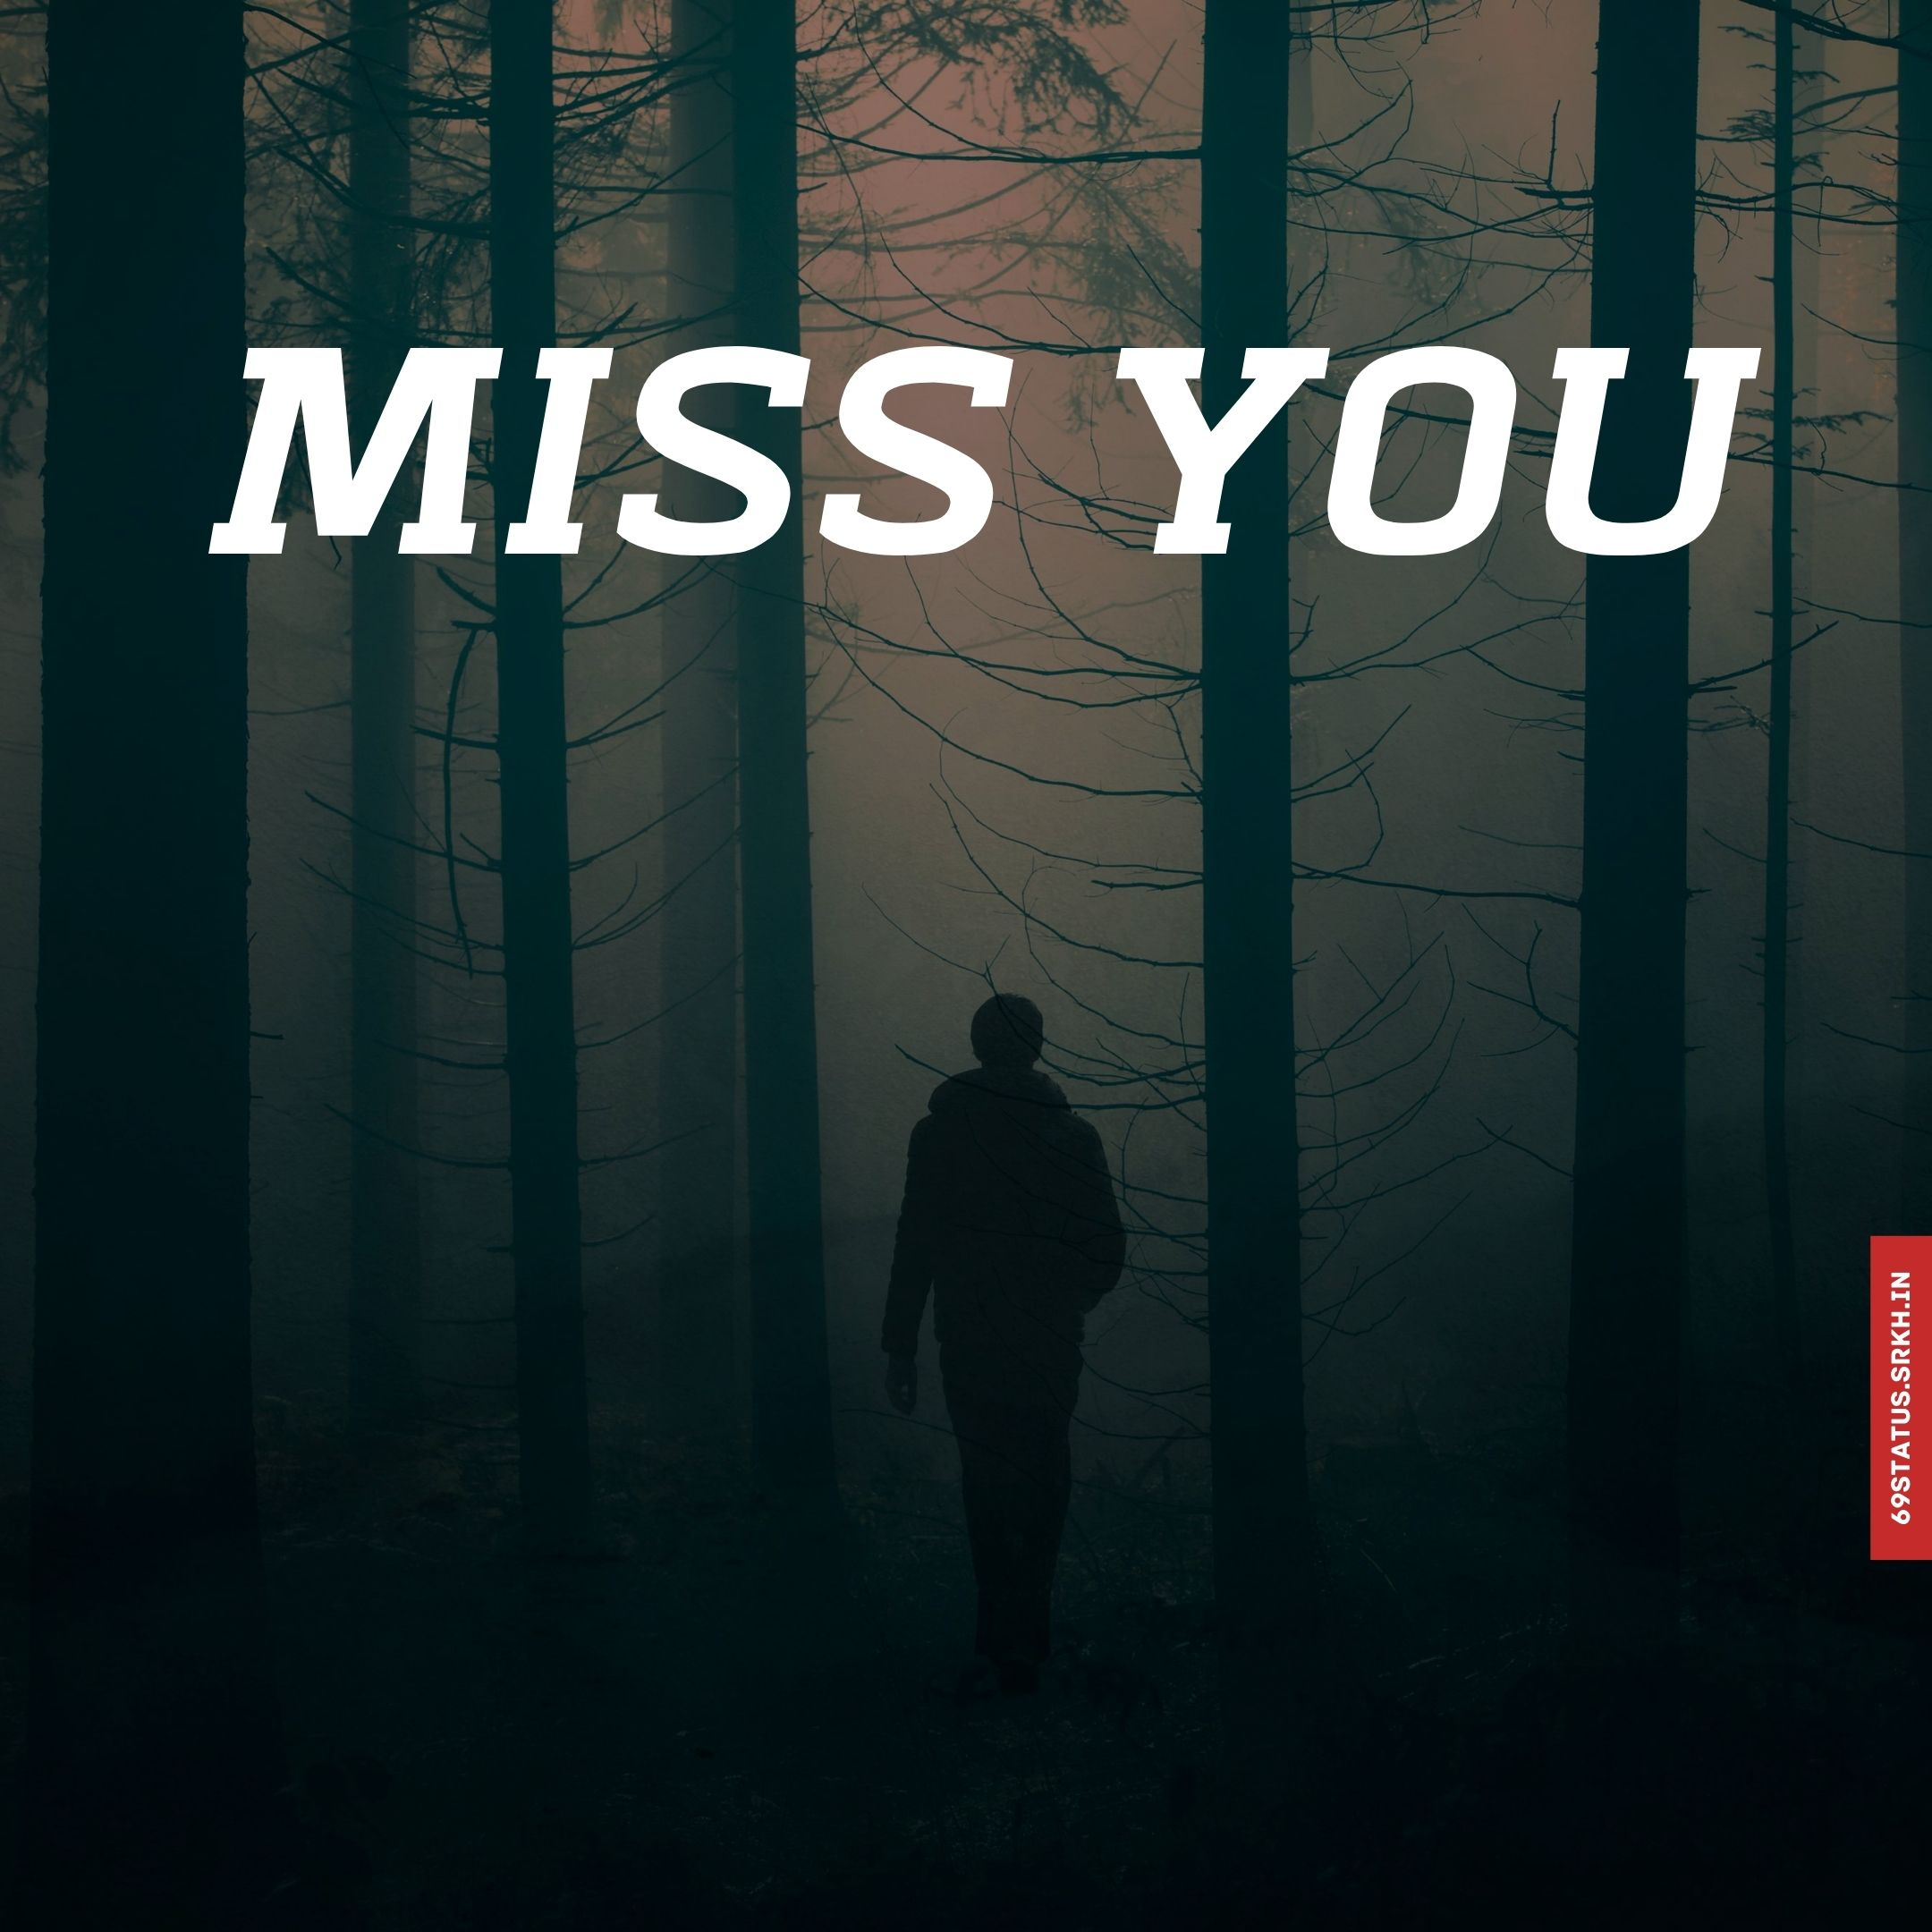 Www miss you image com full HD free download.